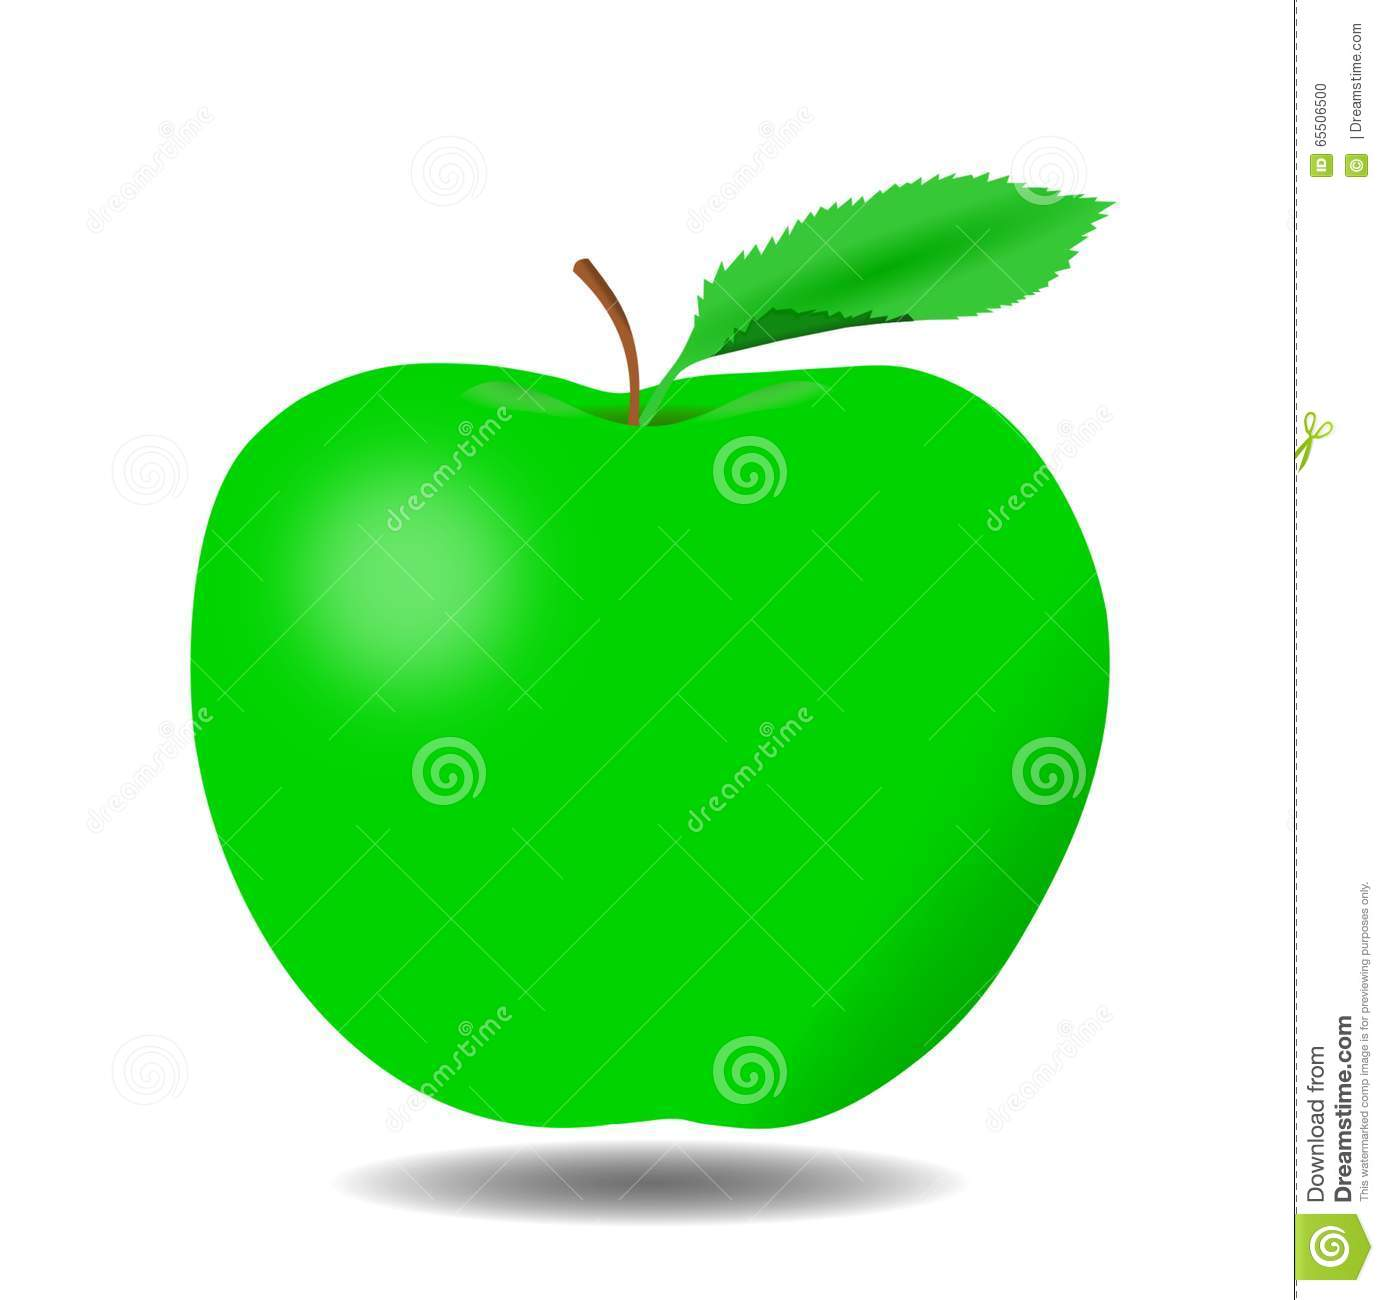 delicious green apple illustration-#48